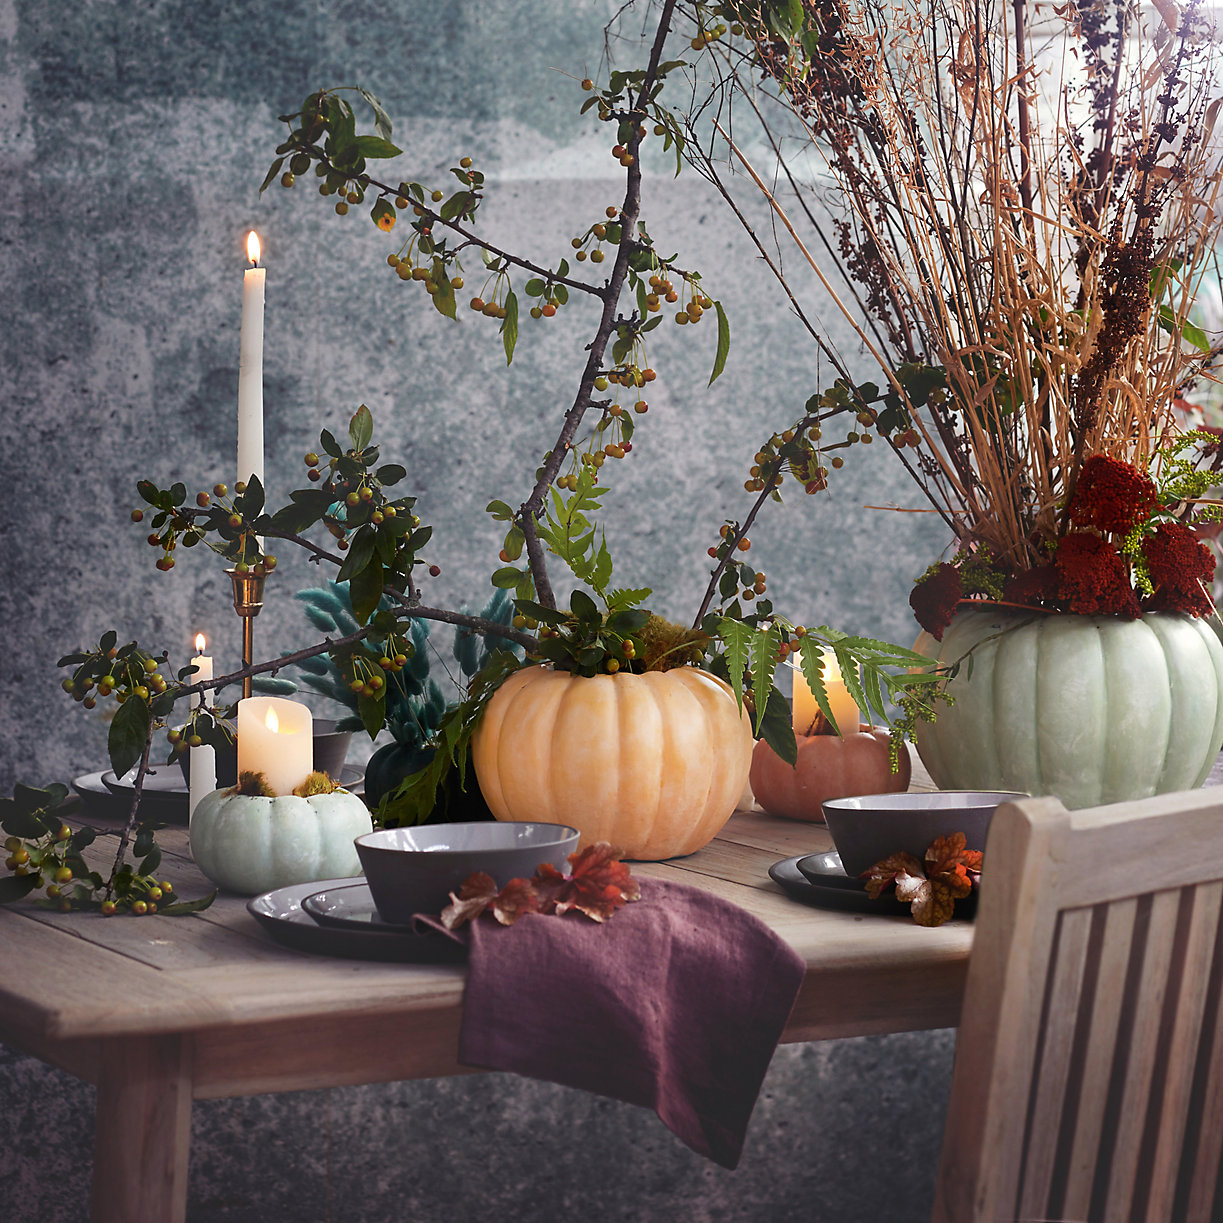 Thanksgiving Table Setting Pumpkin Vase with flowers